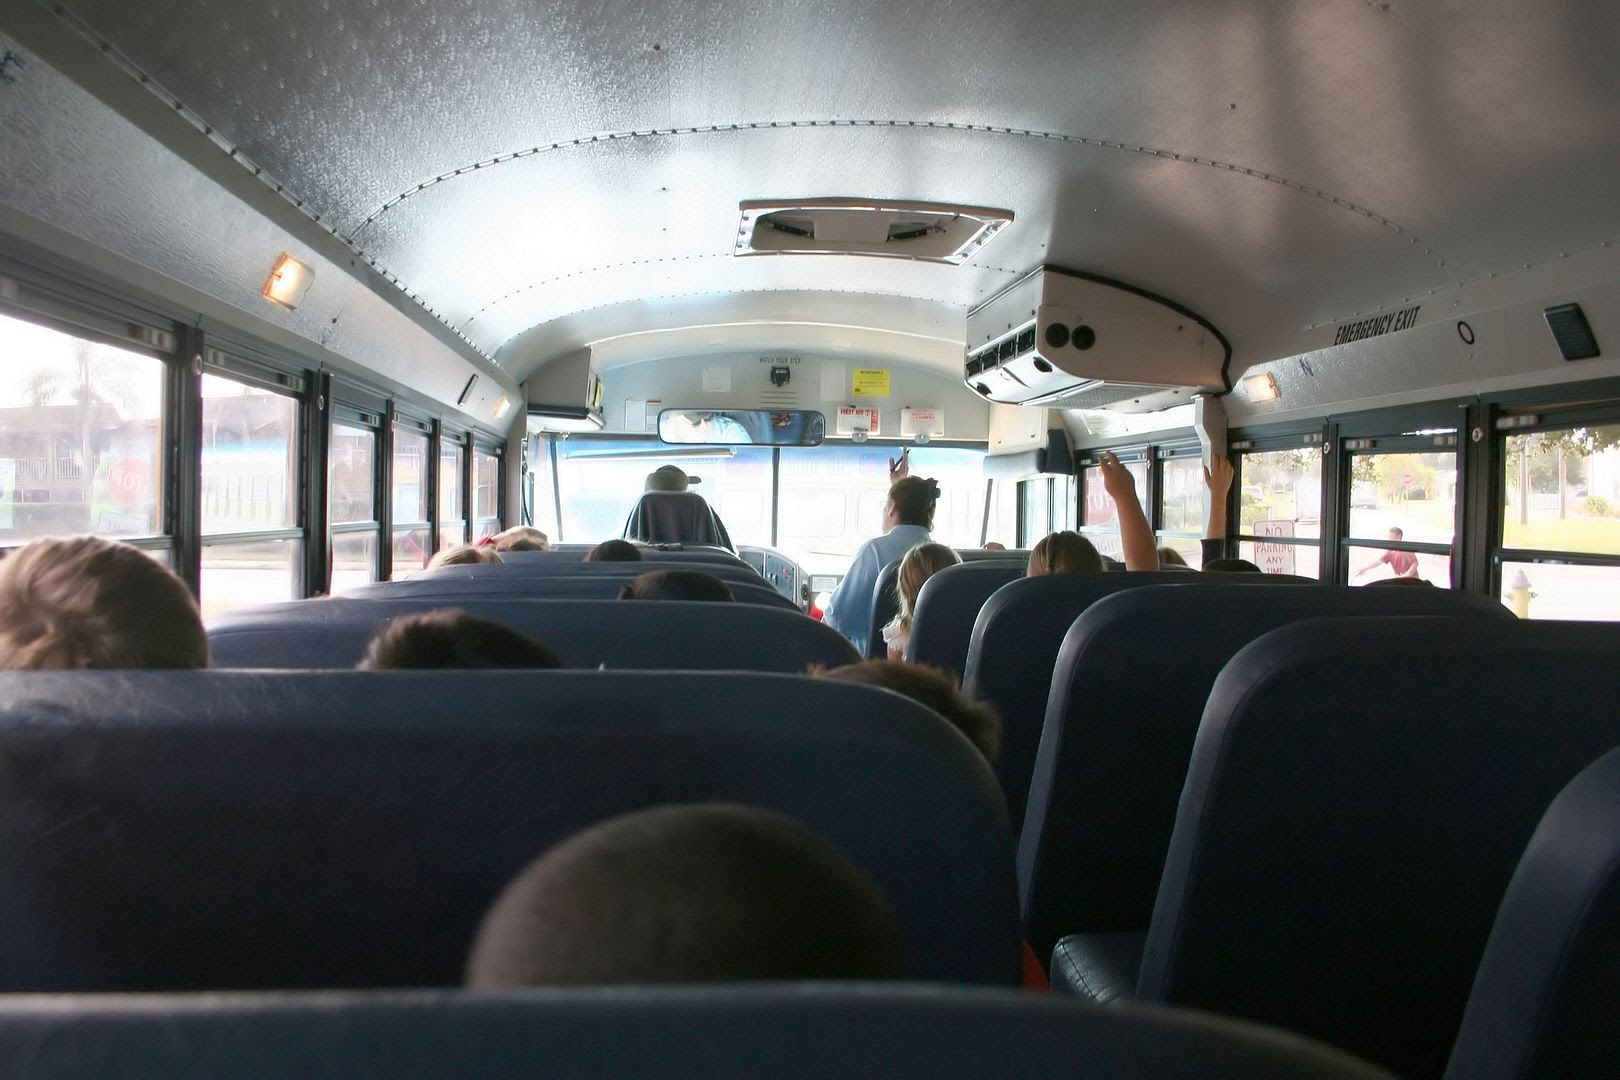 photo school bus_zpsdind1uof.jpg